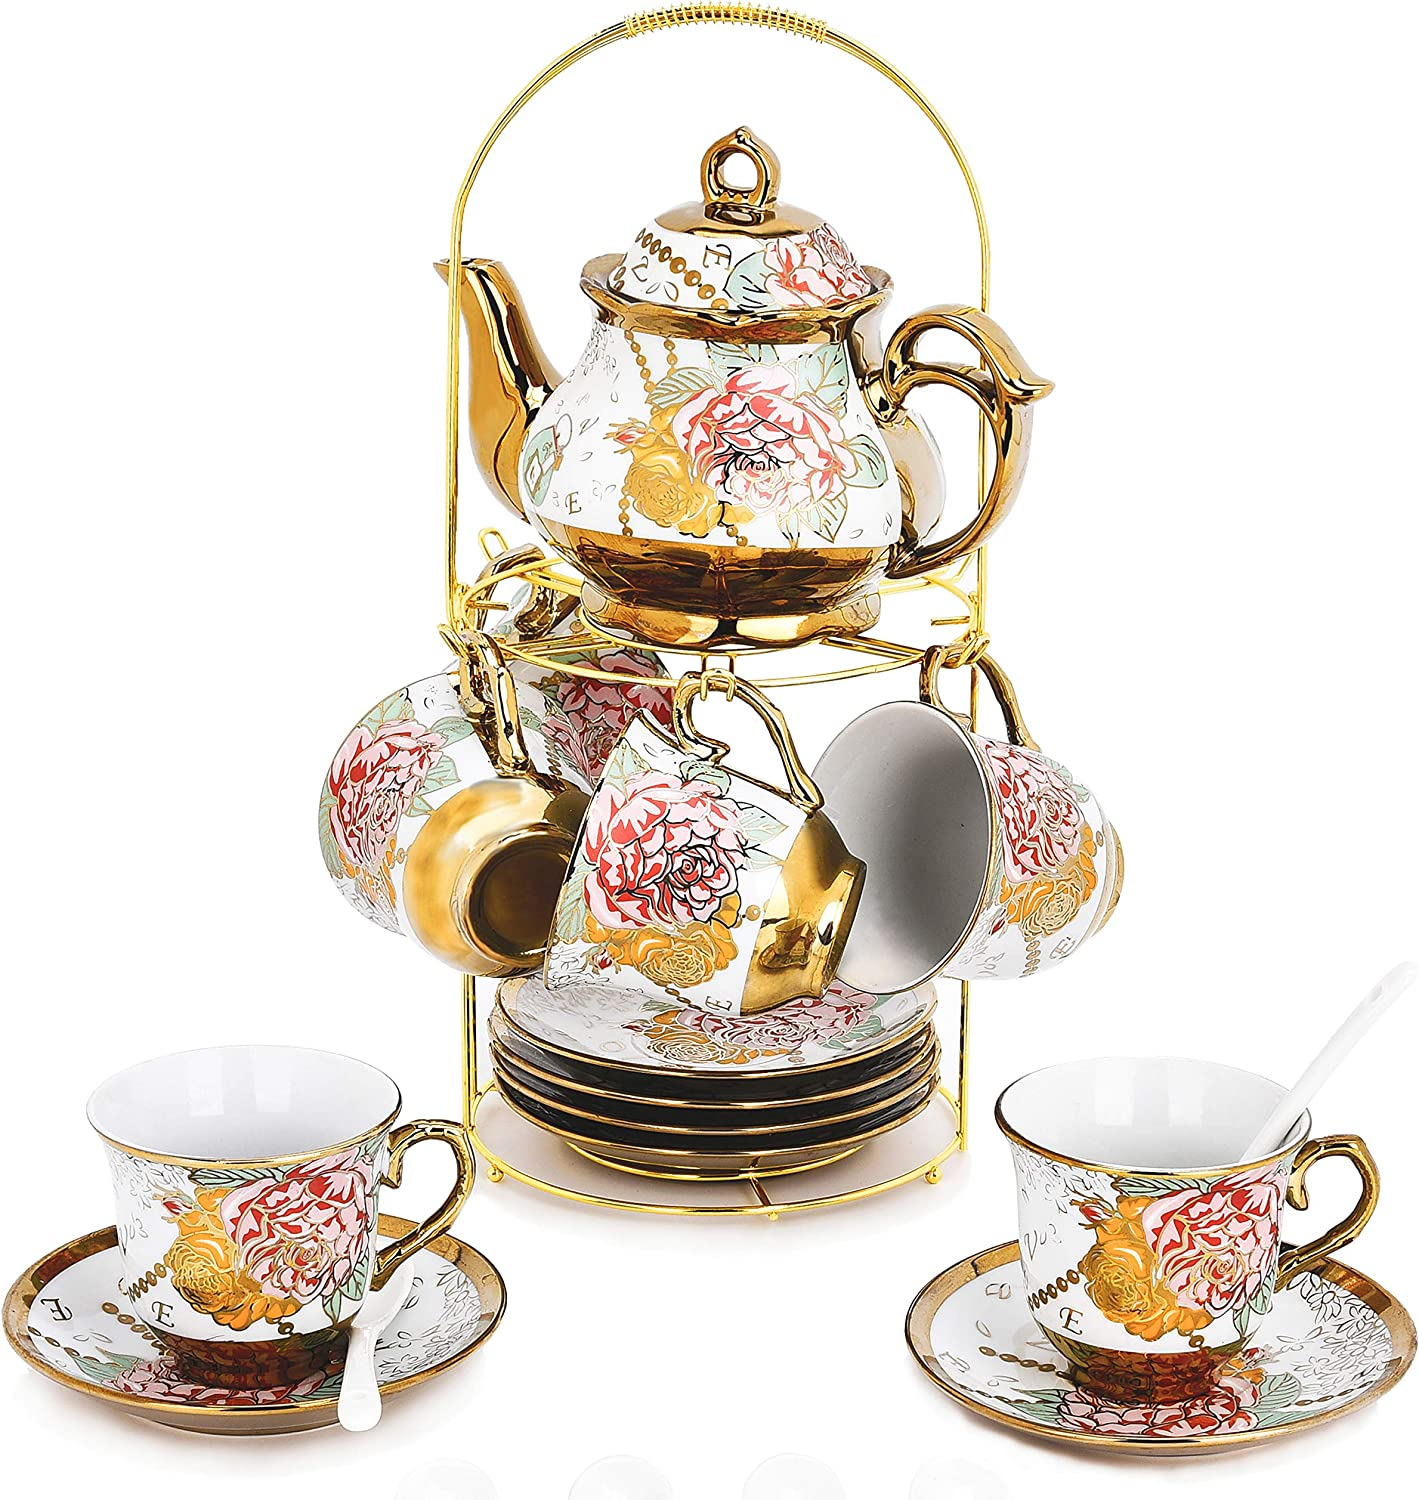 DaGiBayCn 20 Piece European Ceramic Tea Set Coffee set Porcelain Tea SetWith Metal Holder,flower tea set Red Rose Painting